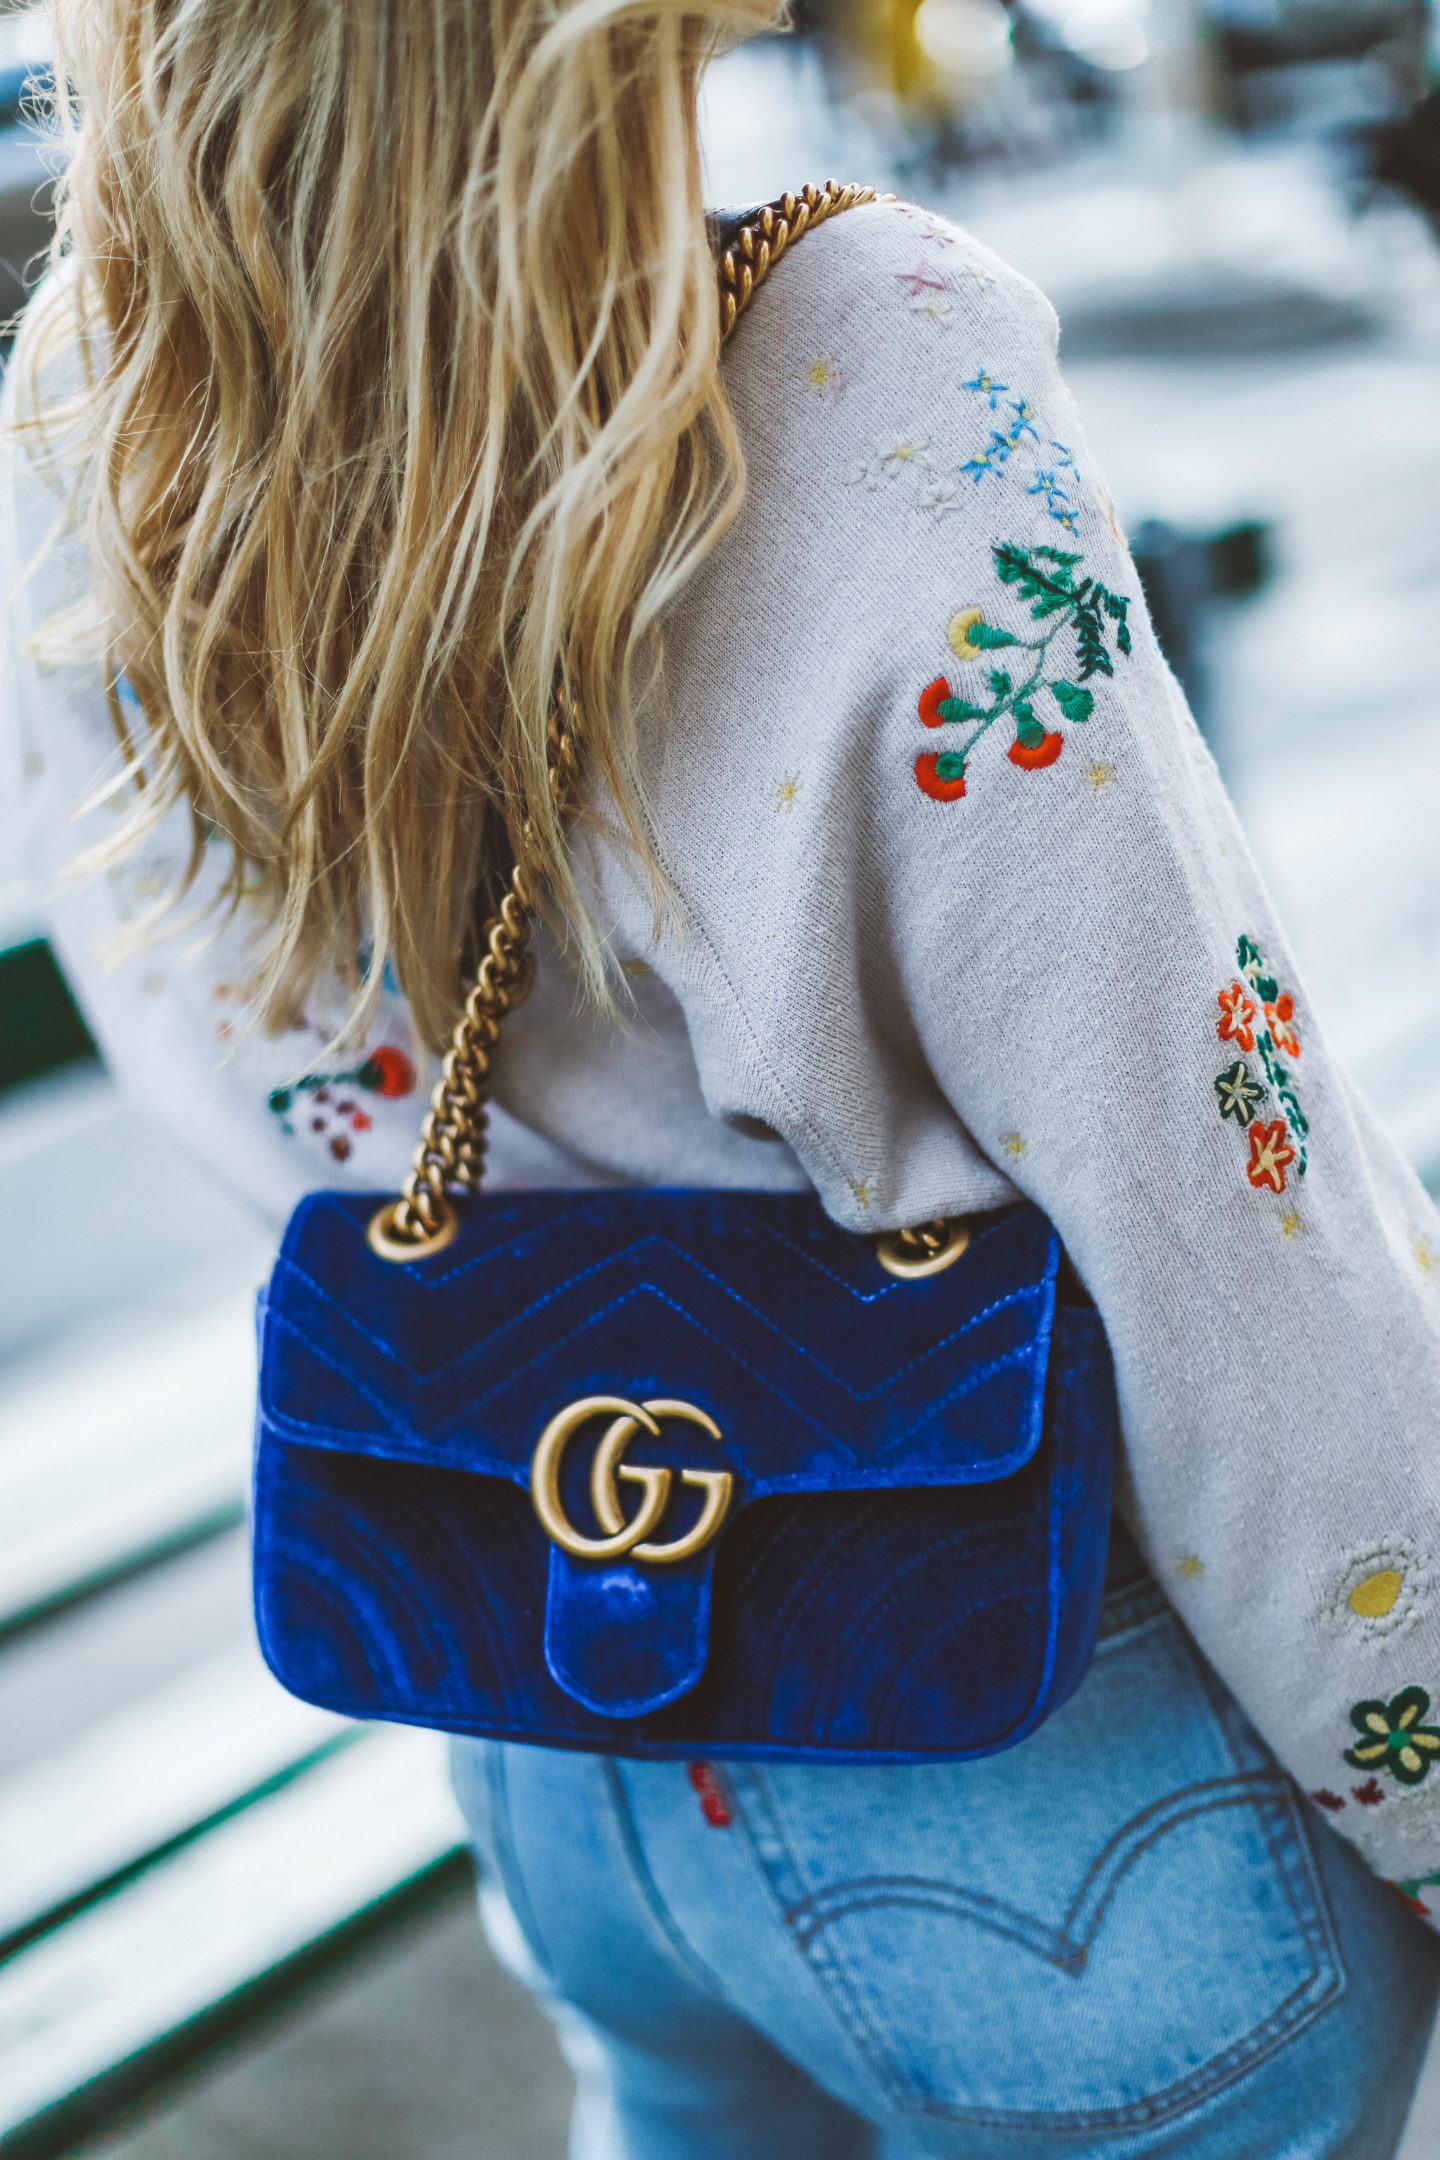 Sac Gucci velours - Blondie Baby blog mode et voyages